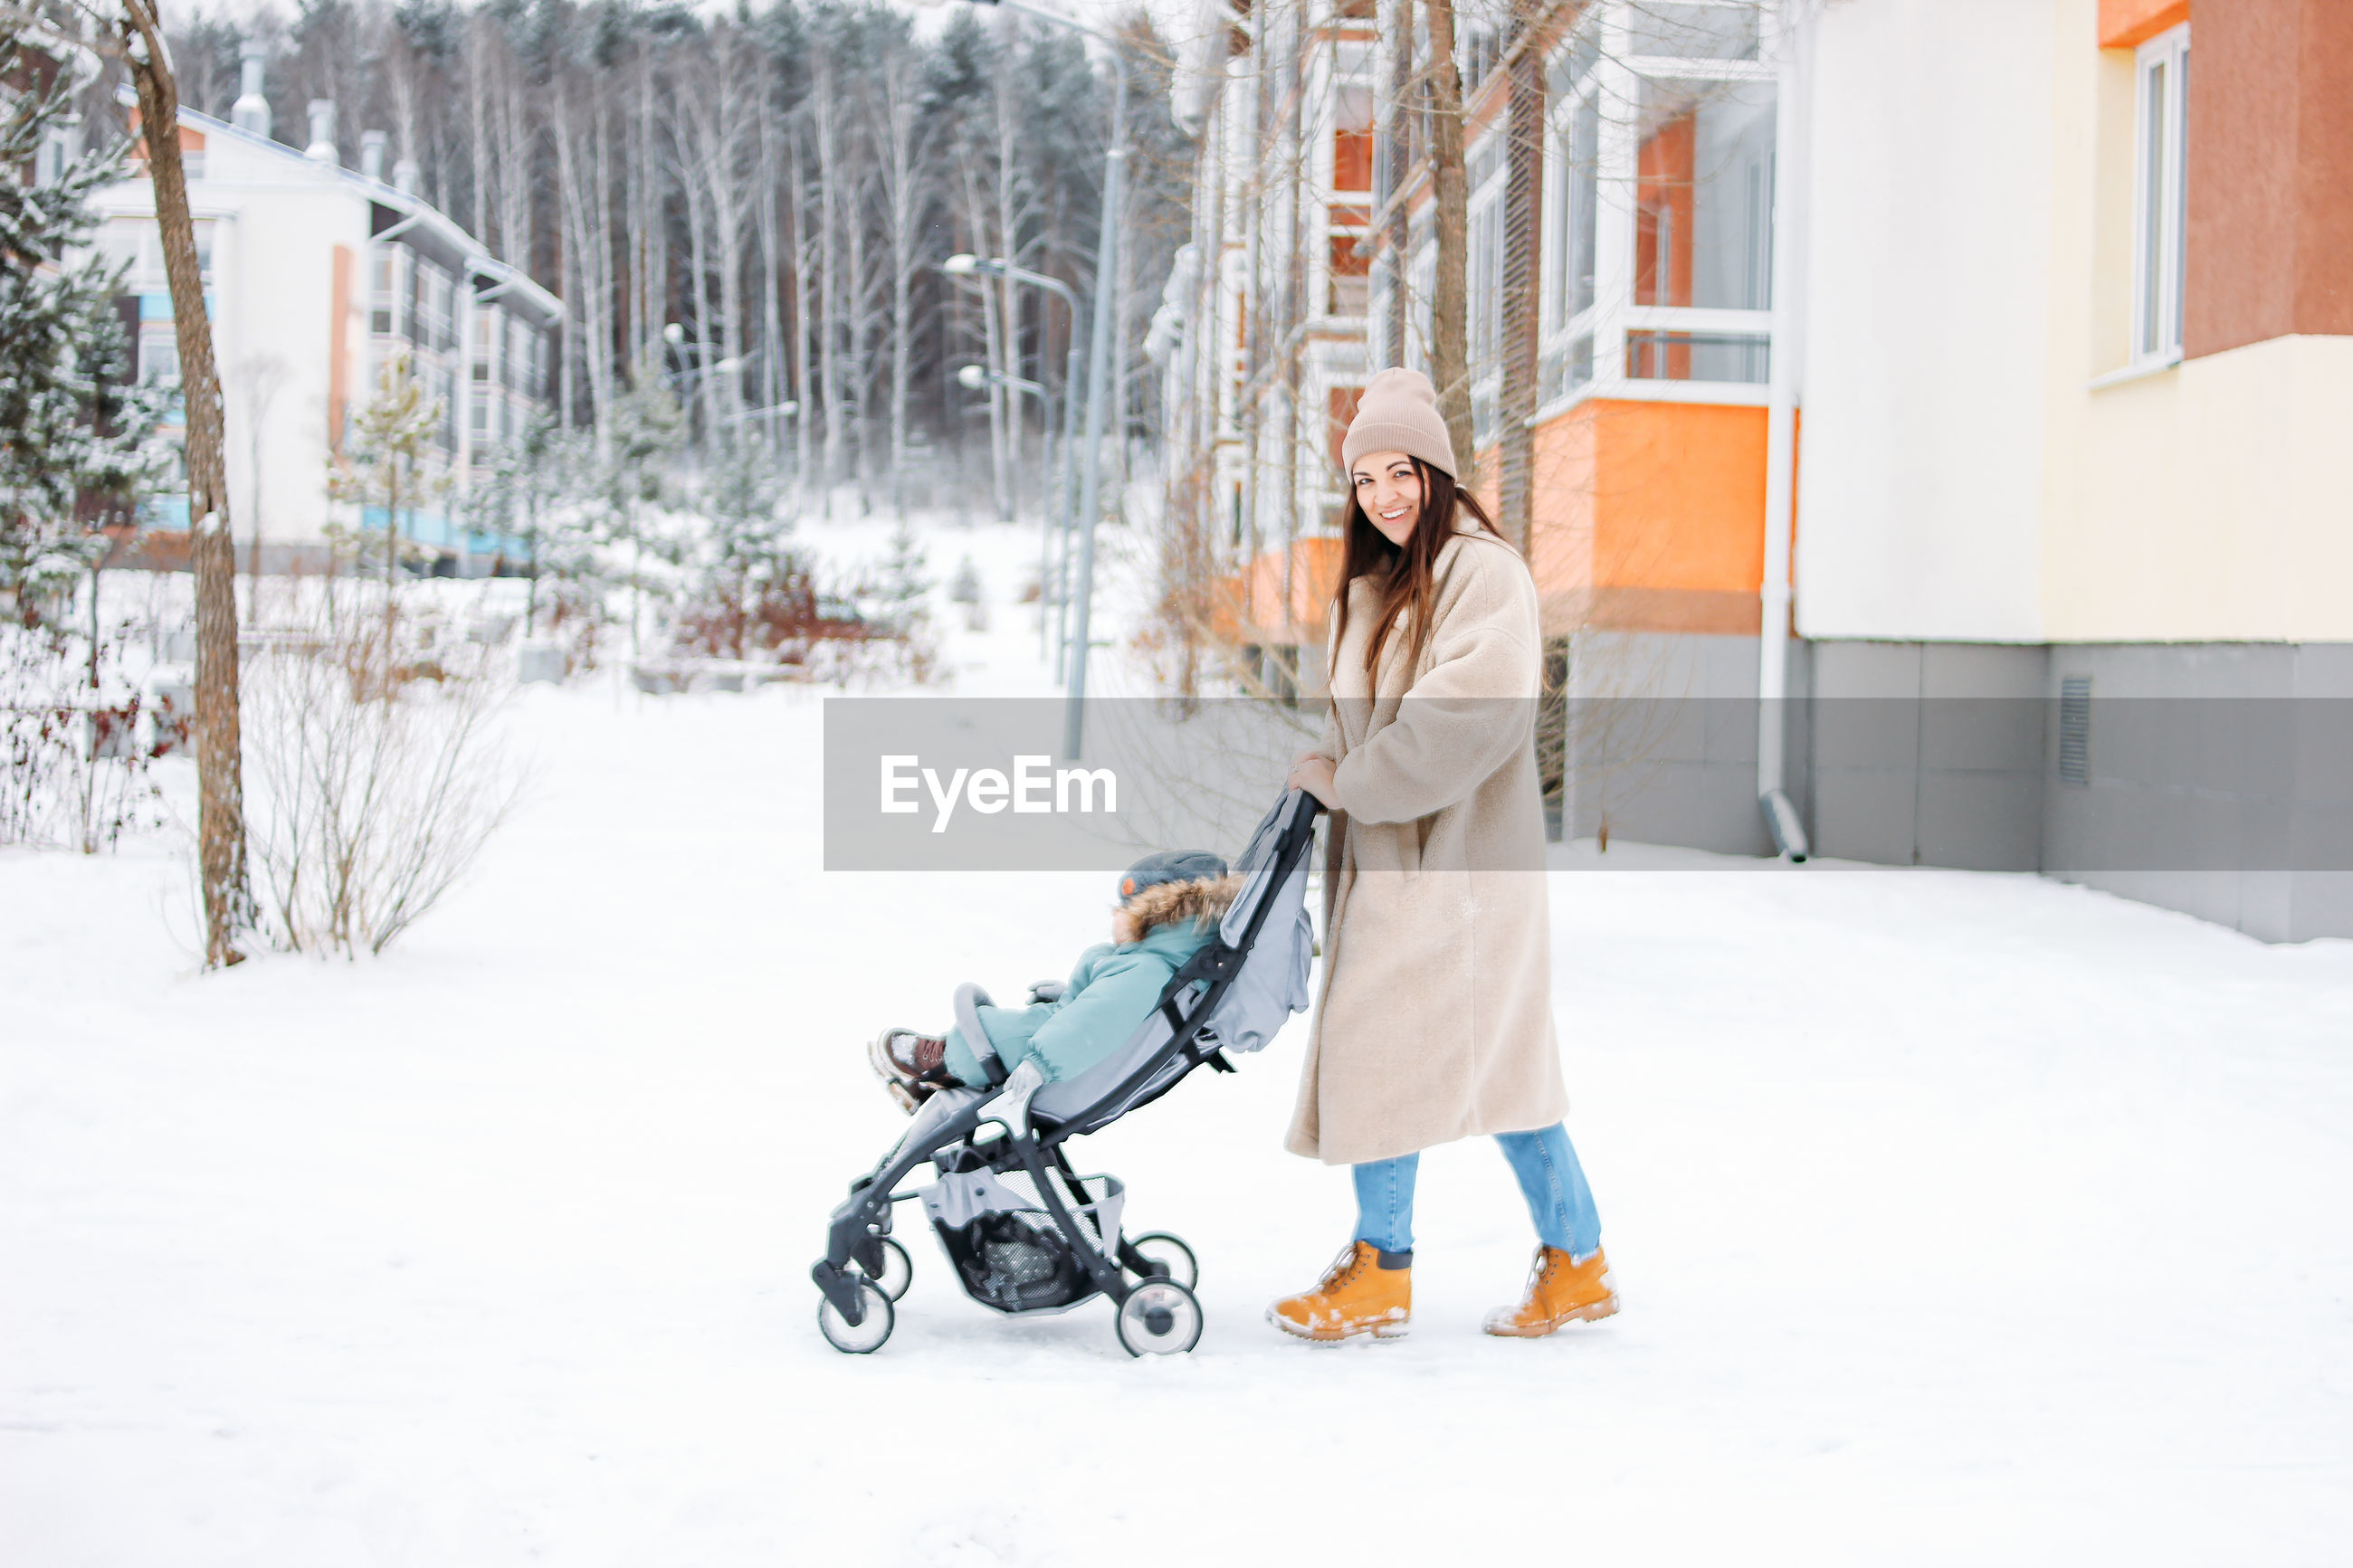 WOMAN WITH UMBRELLA WALKING ON SNOW COVERED BUILDINGS